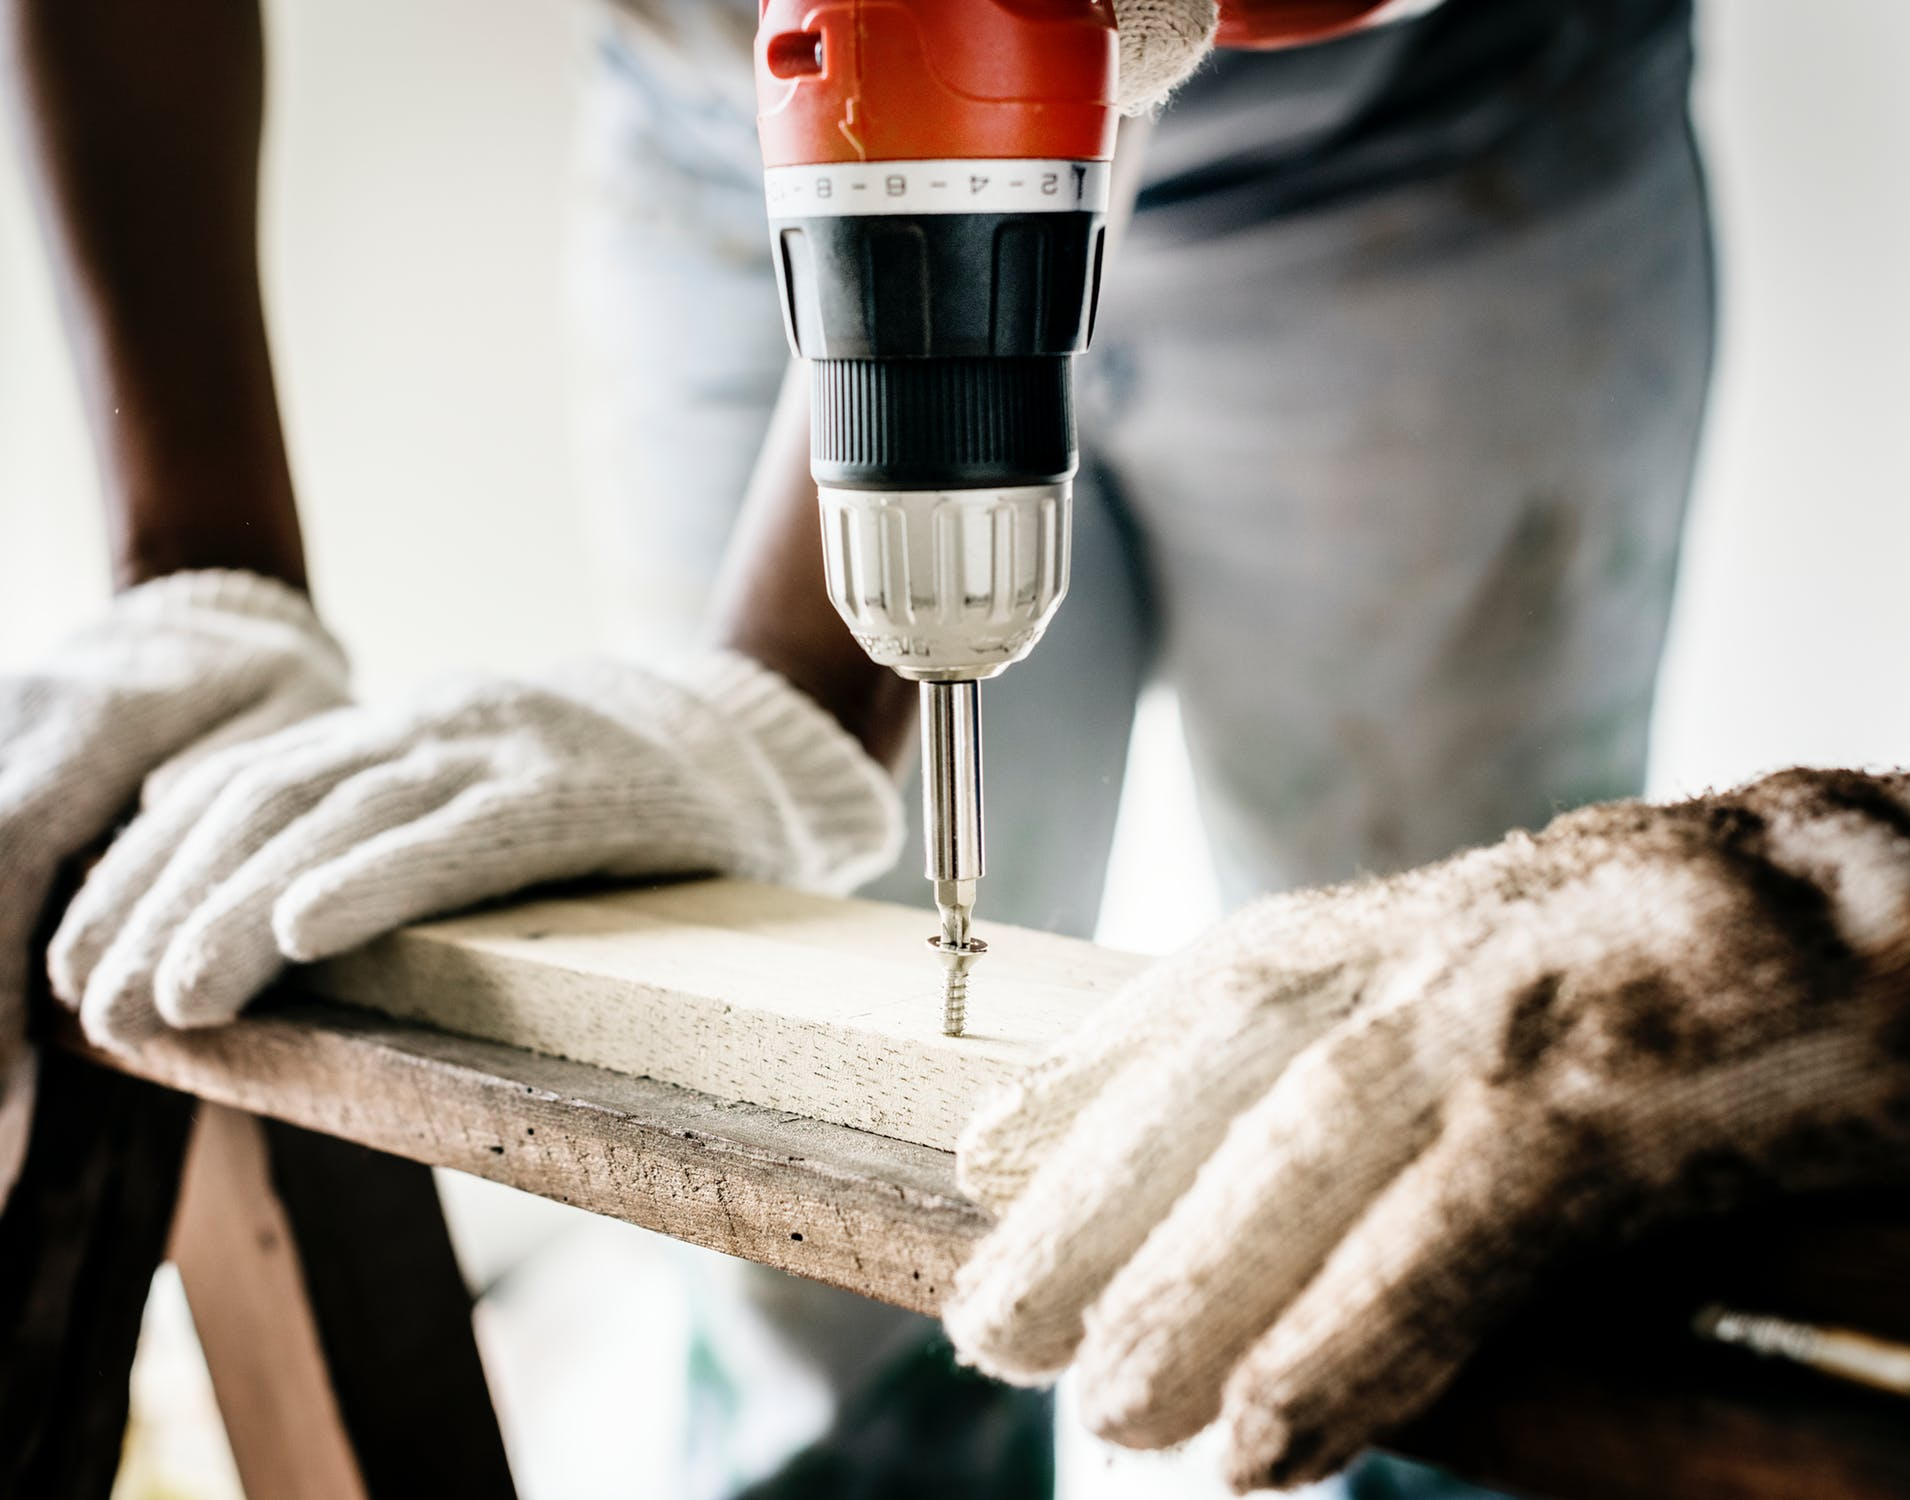 Handyman - We also offer a Handyman service for those smaller jobs, at a reduced rate. Saving you time and effort looking for multiple trades.